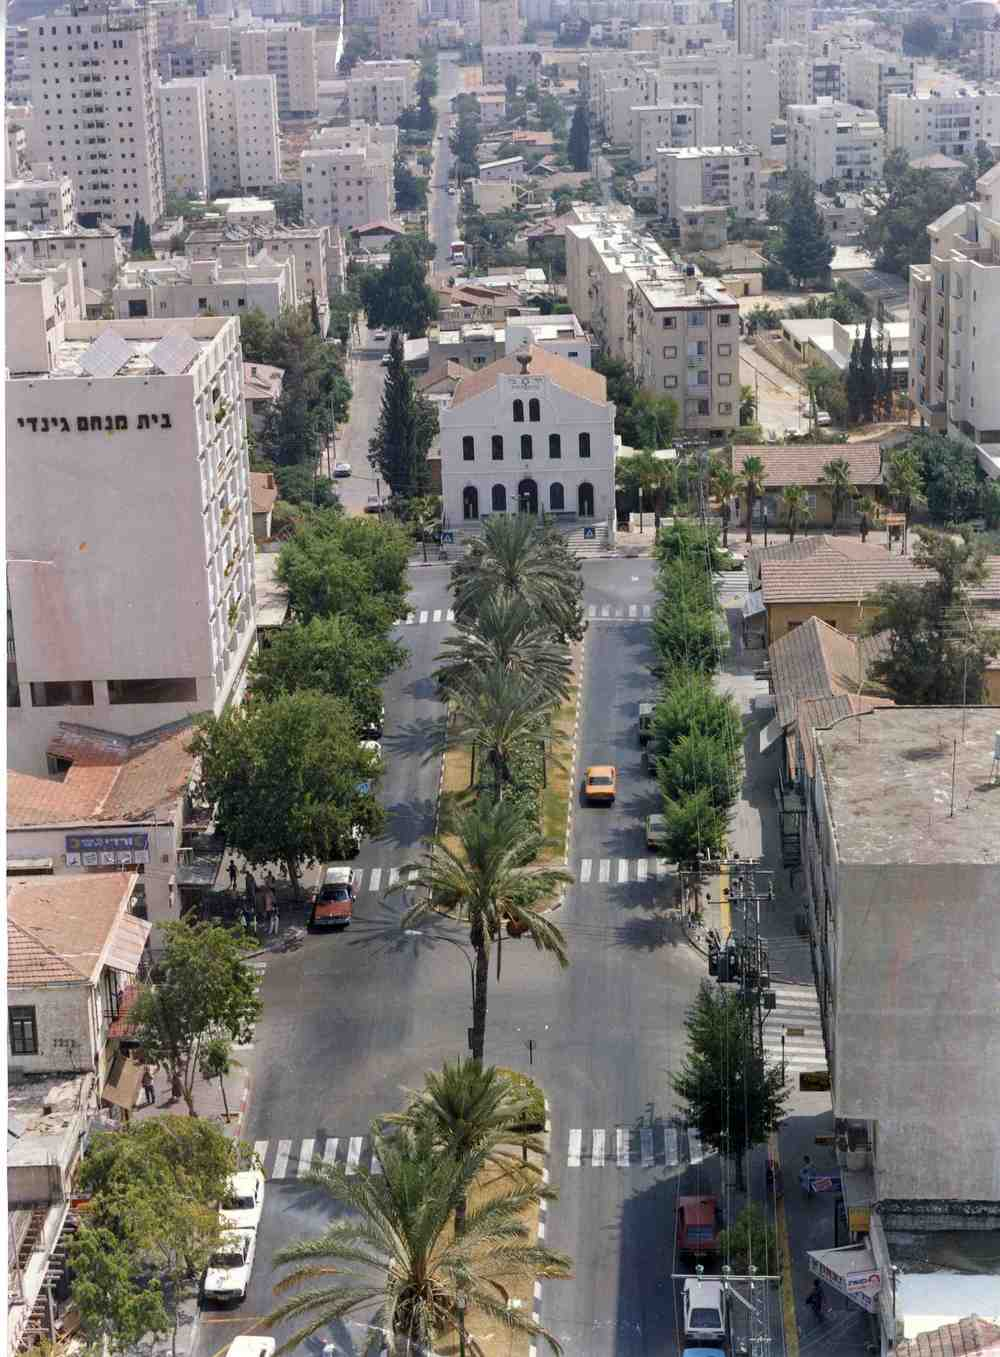 Rishon Lezion. Credit: Wikimedia Commons.